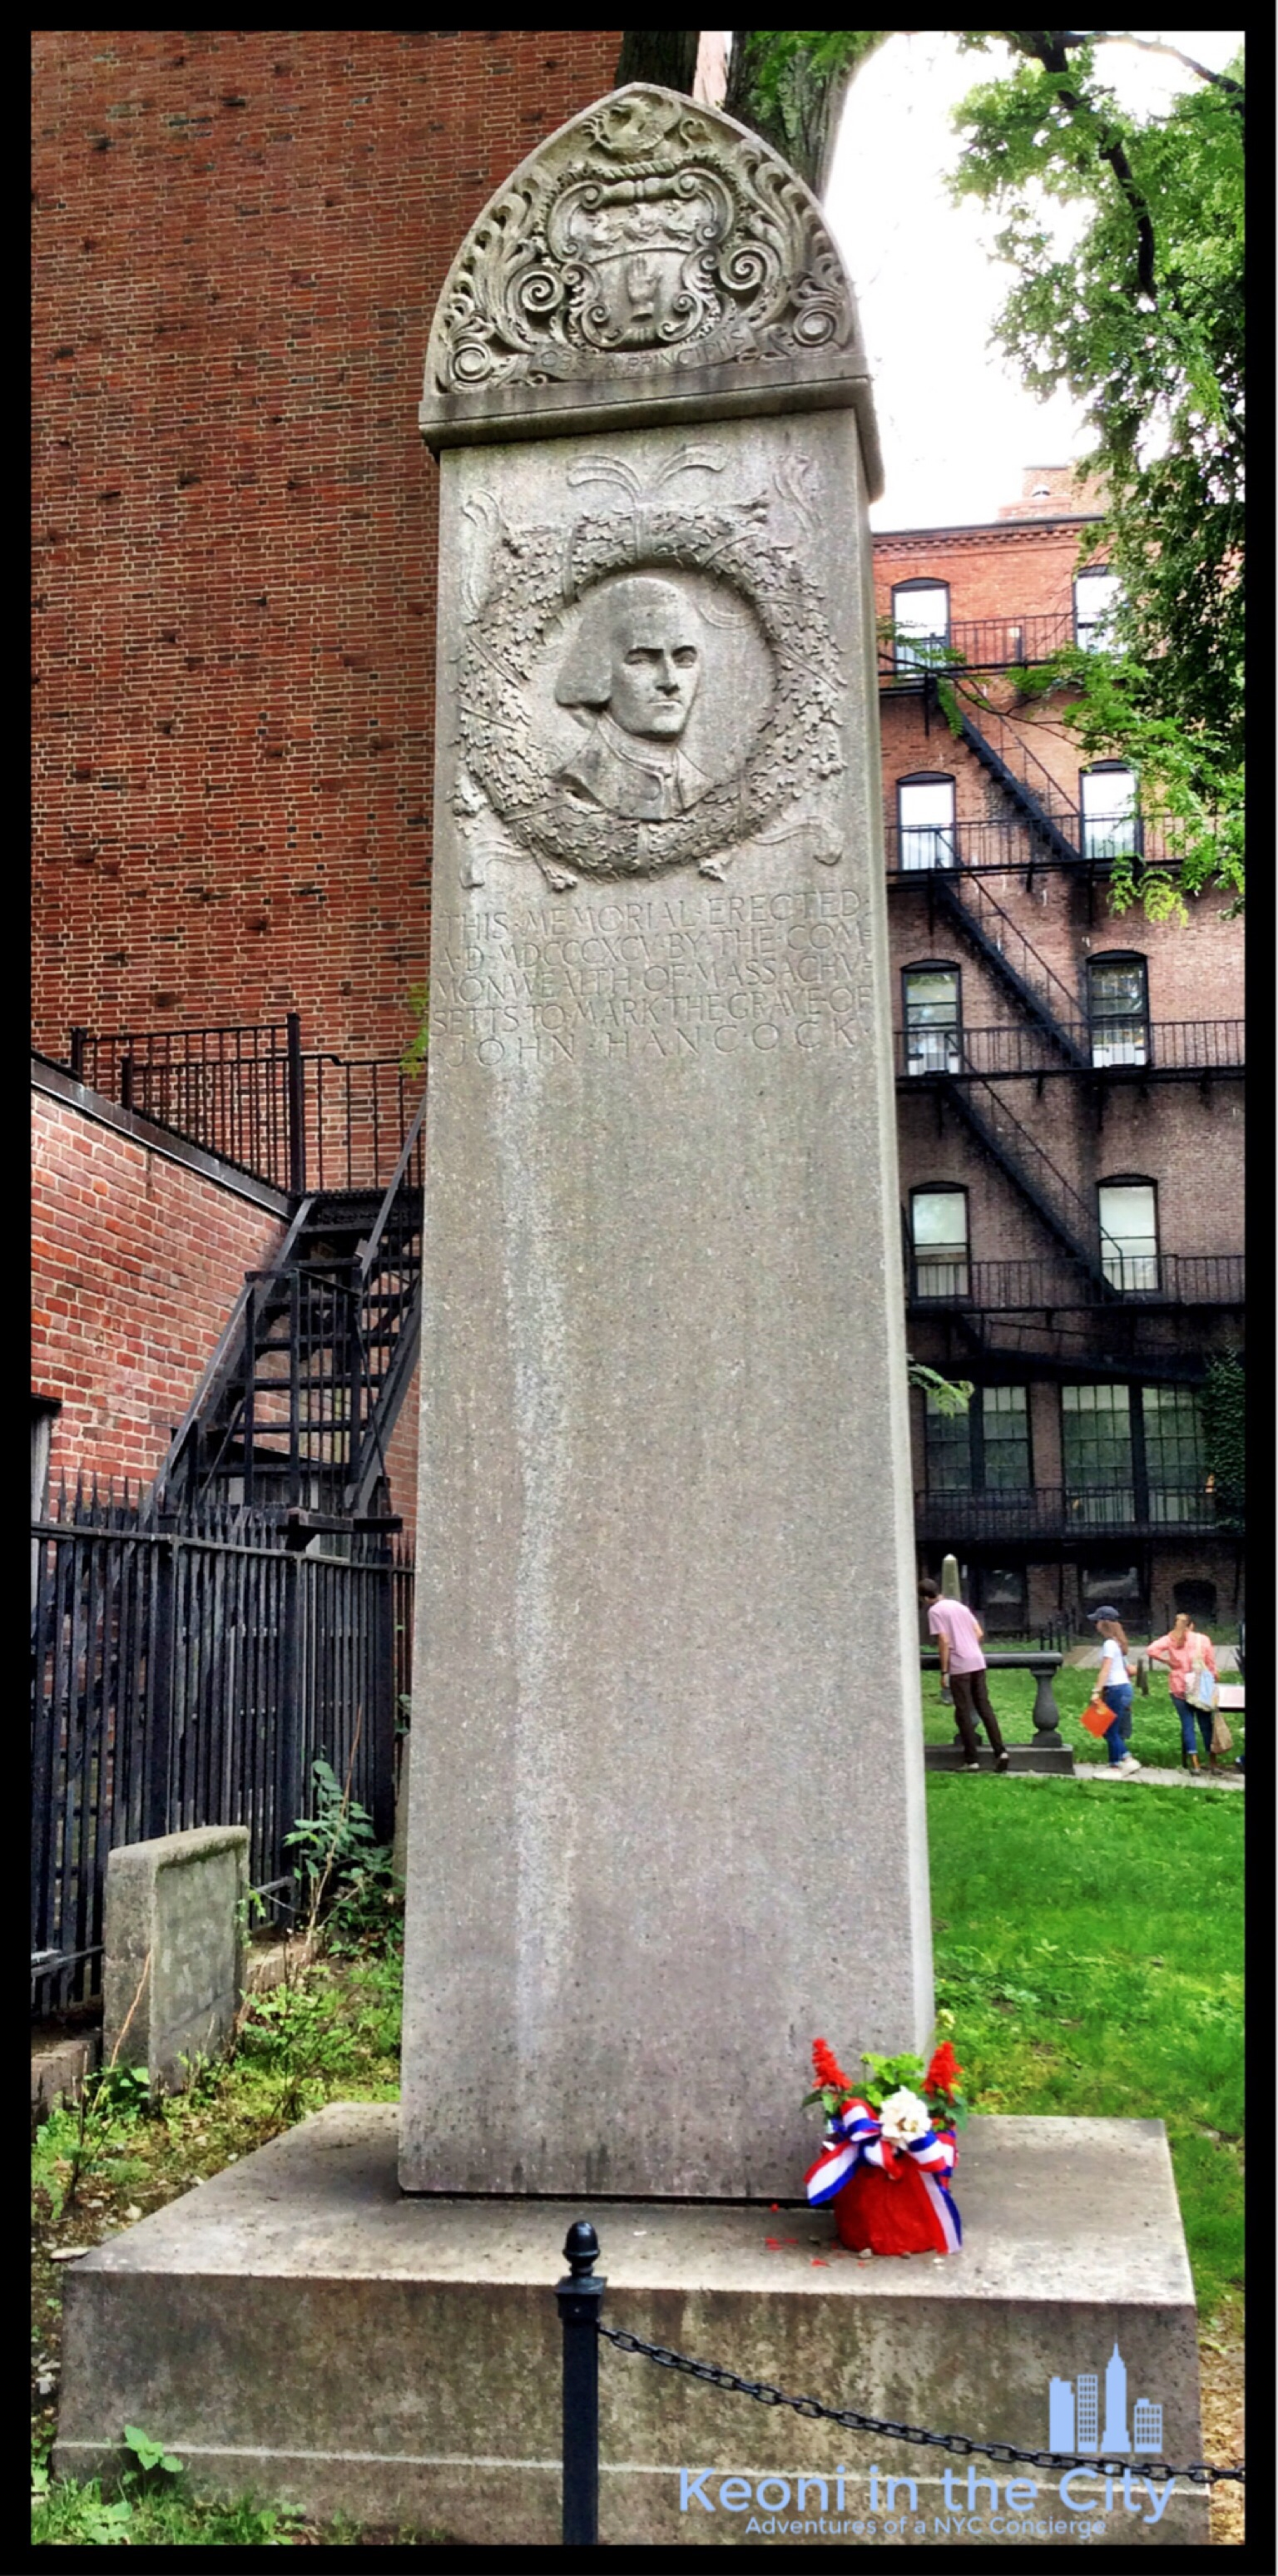 Proof that our forefathers had a sense of humor; John Hancock's gravestone